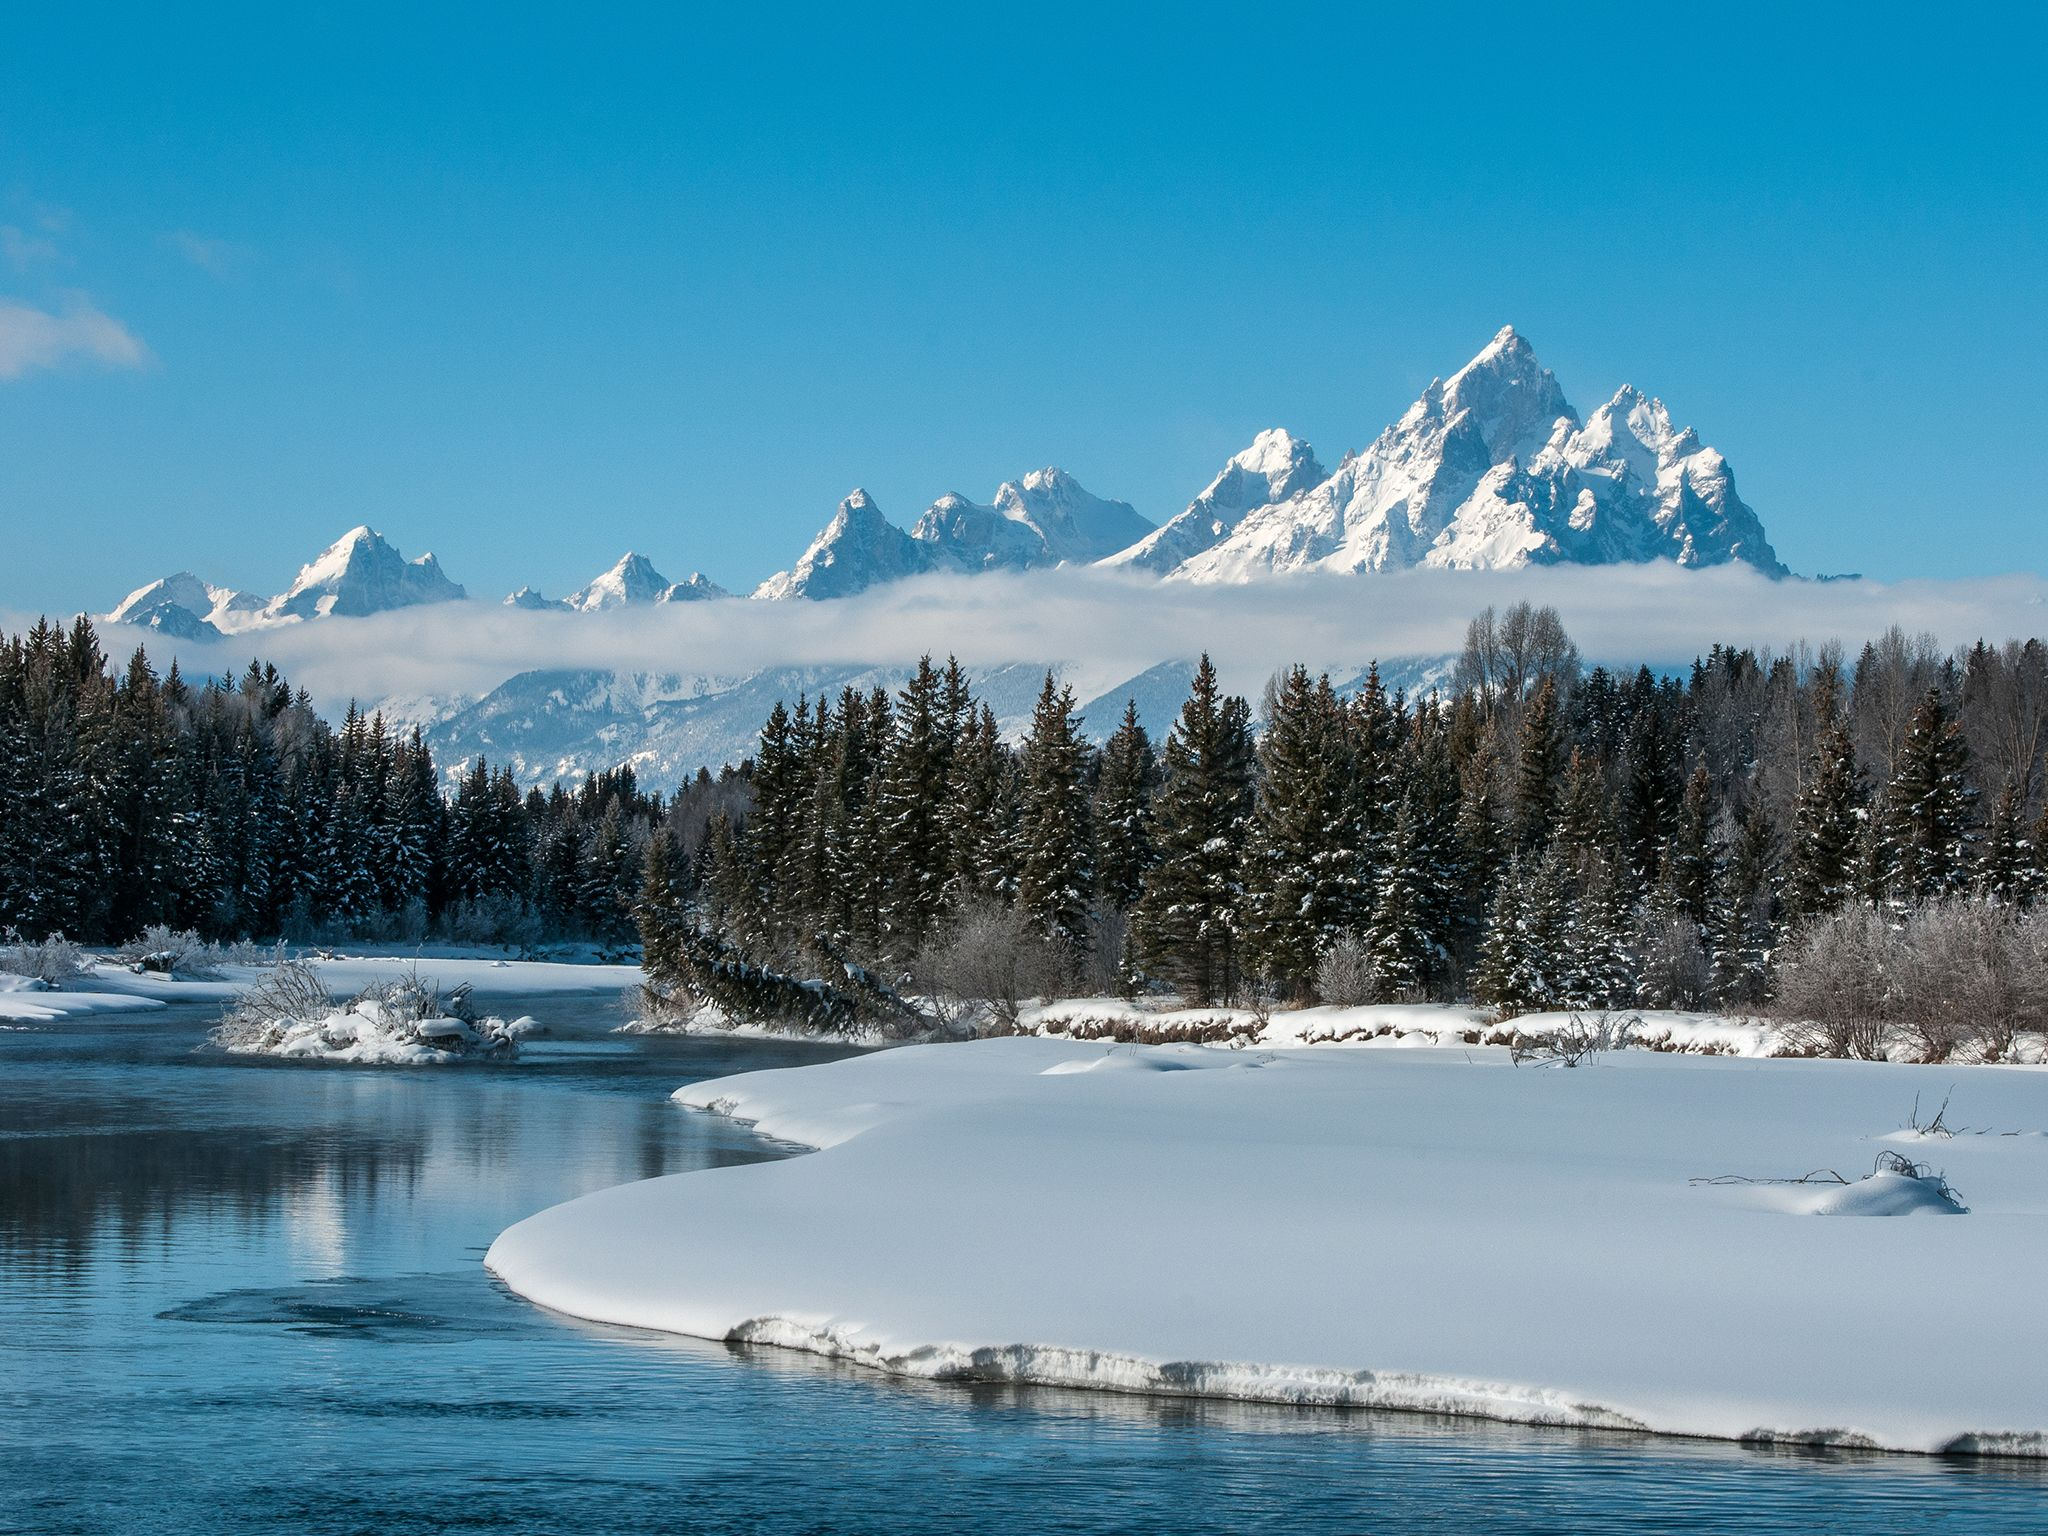 Grand Teton National Park, Wyo.:The Snake River meanders in front of the Teton Mountains mid... [Photo of the day - April 2015]